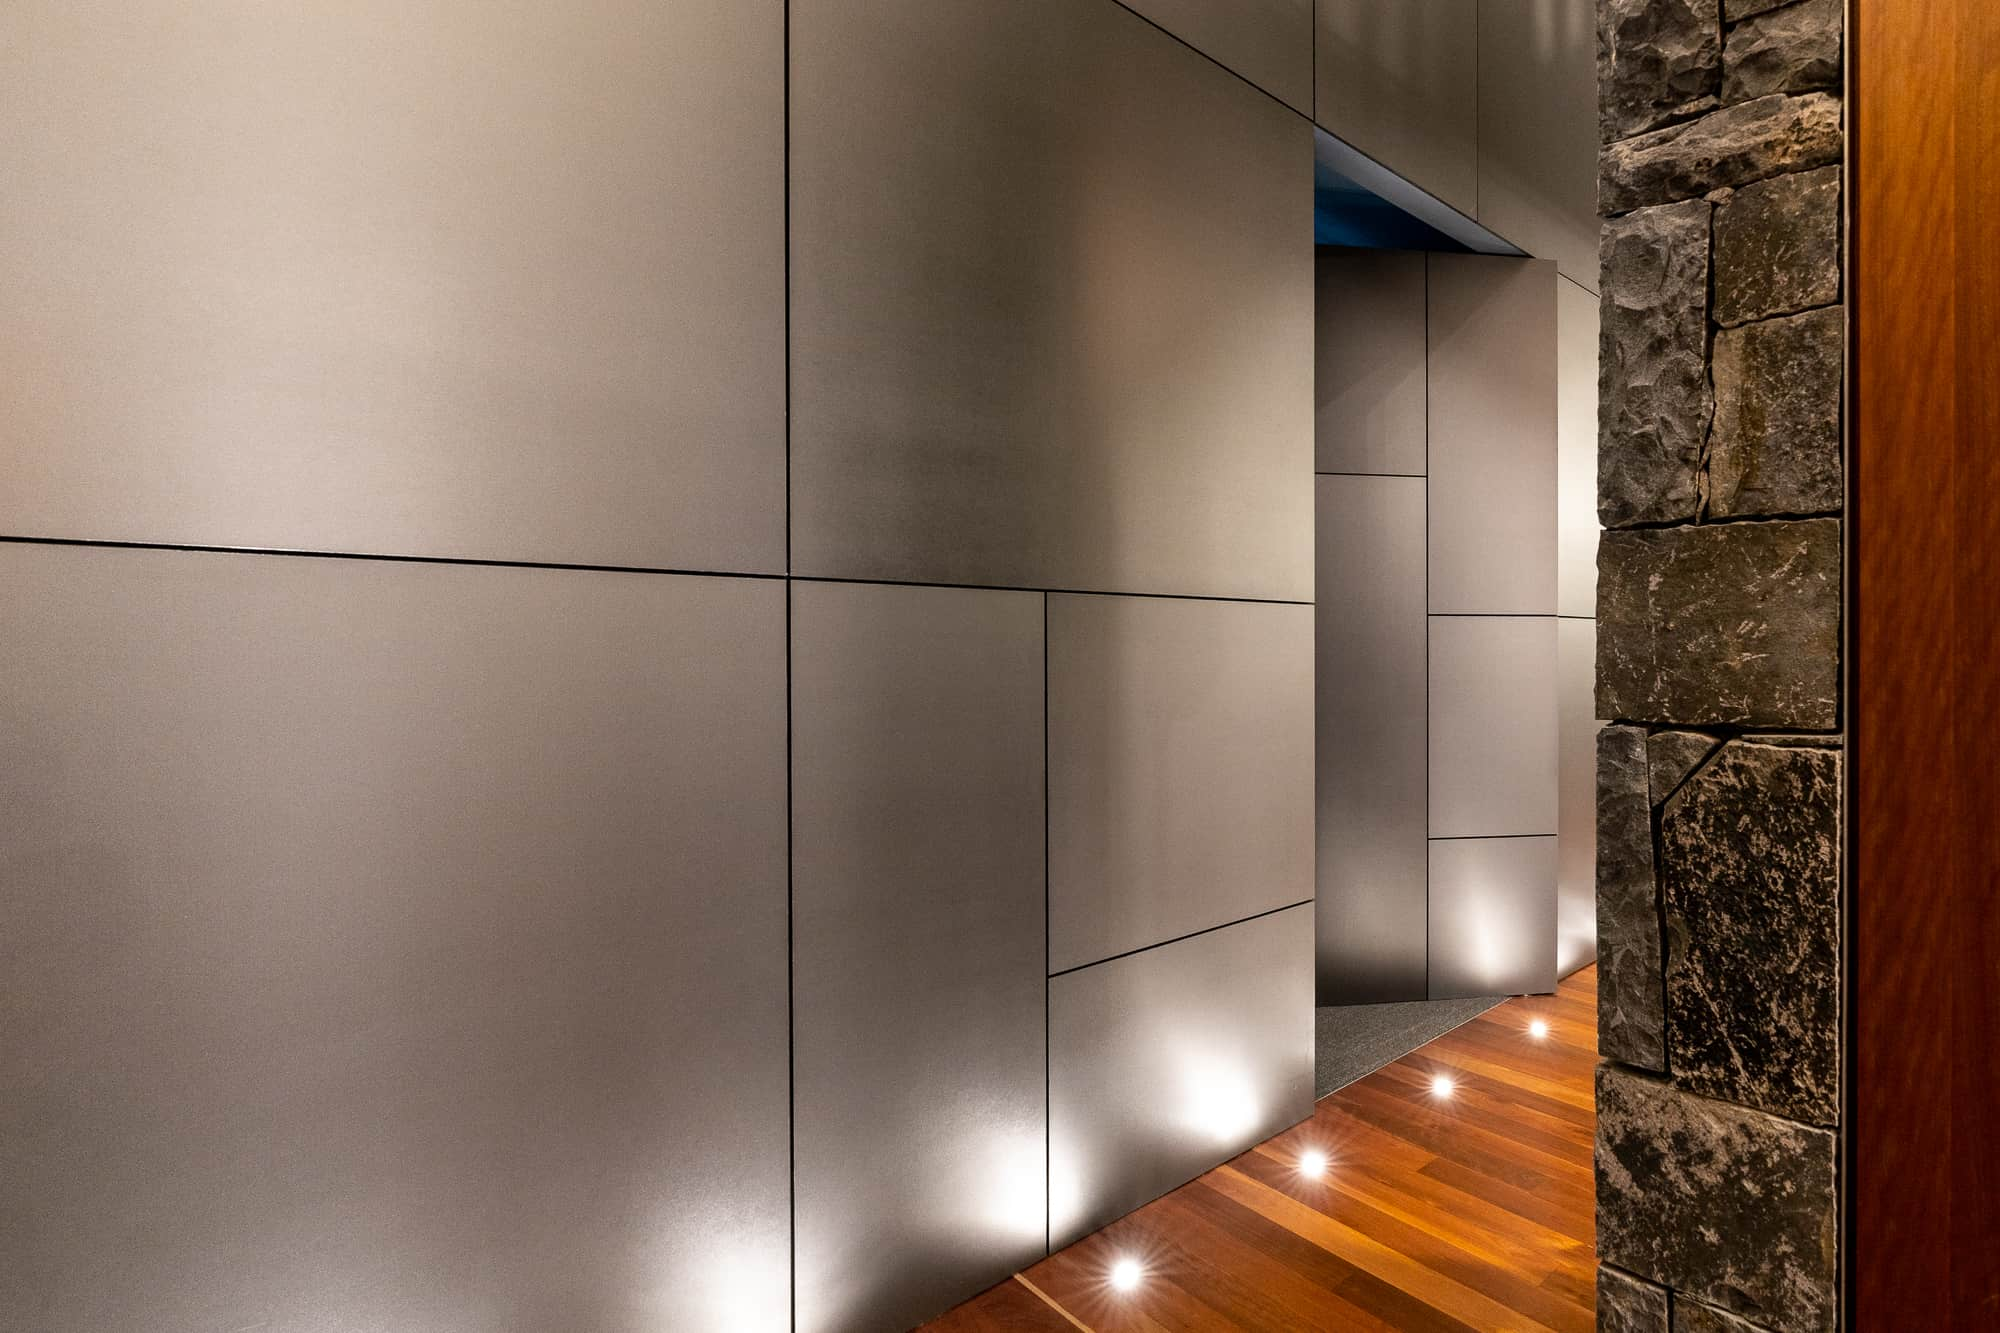 Real Estate Architecture Photography by Steven Lloyd Photography